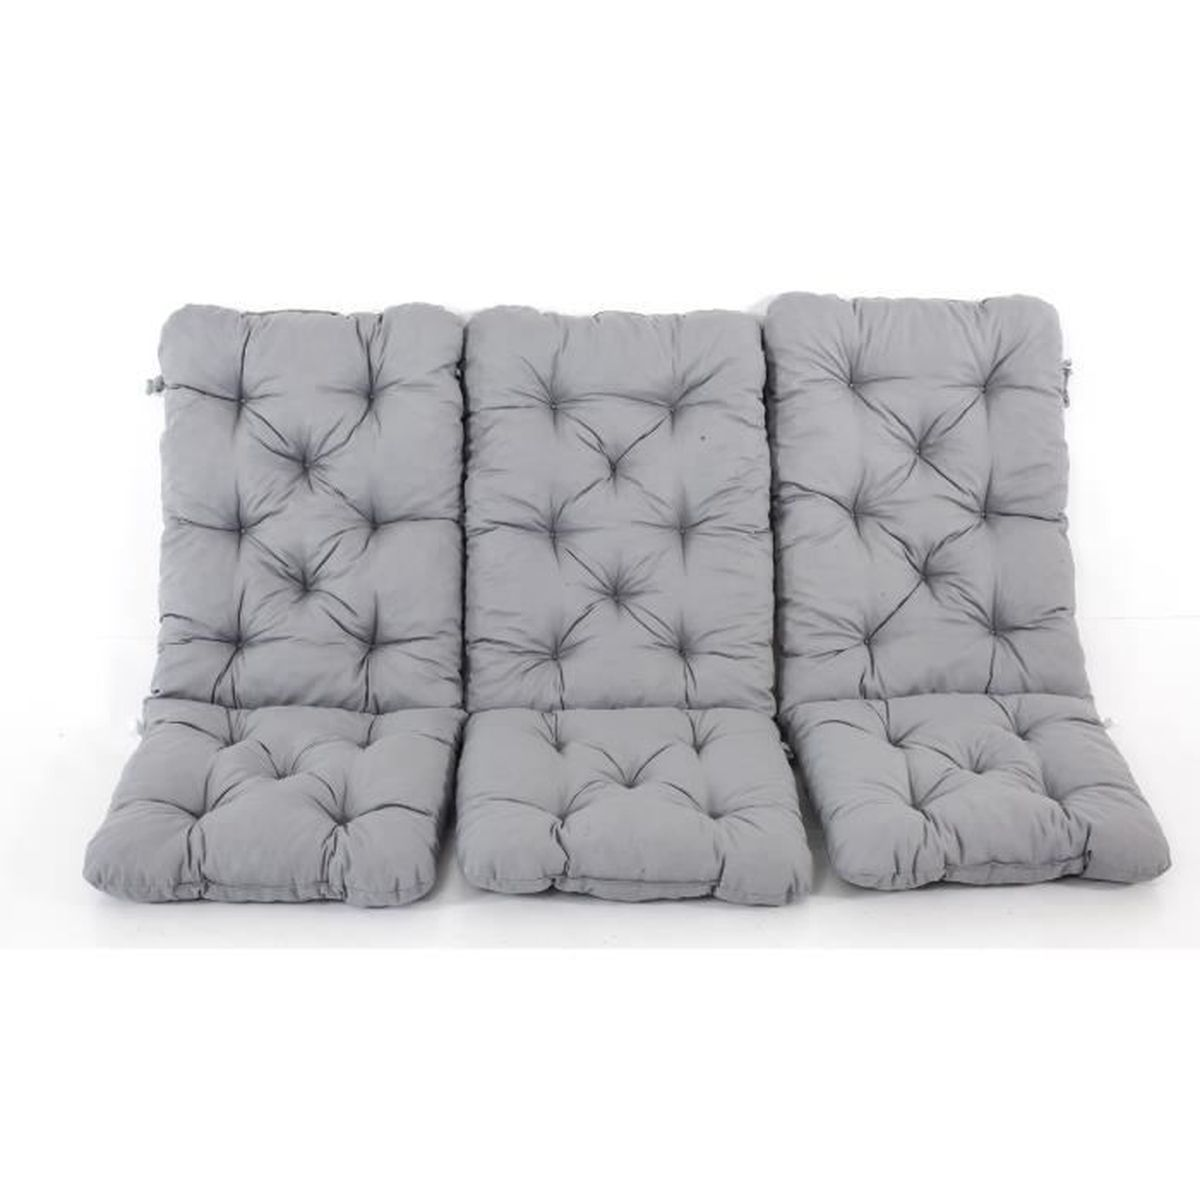 coussin fauteuil jardin 120 cm achat vente coussin fauteuil jardin 120 cm pas cher cdiscount. Black Bedroom Furniture Sets. Home Design Ideas